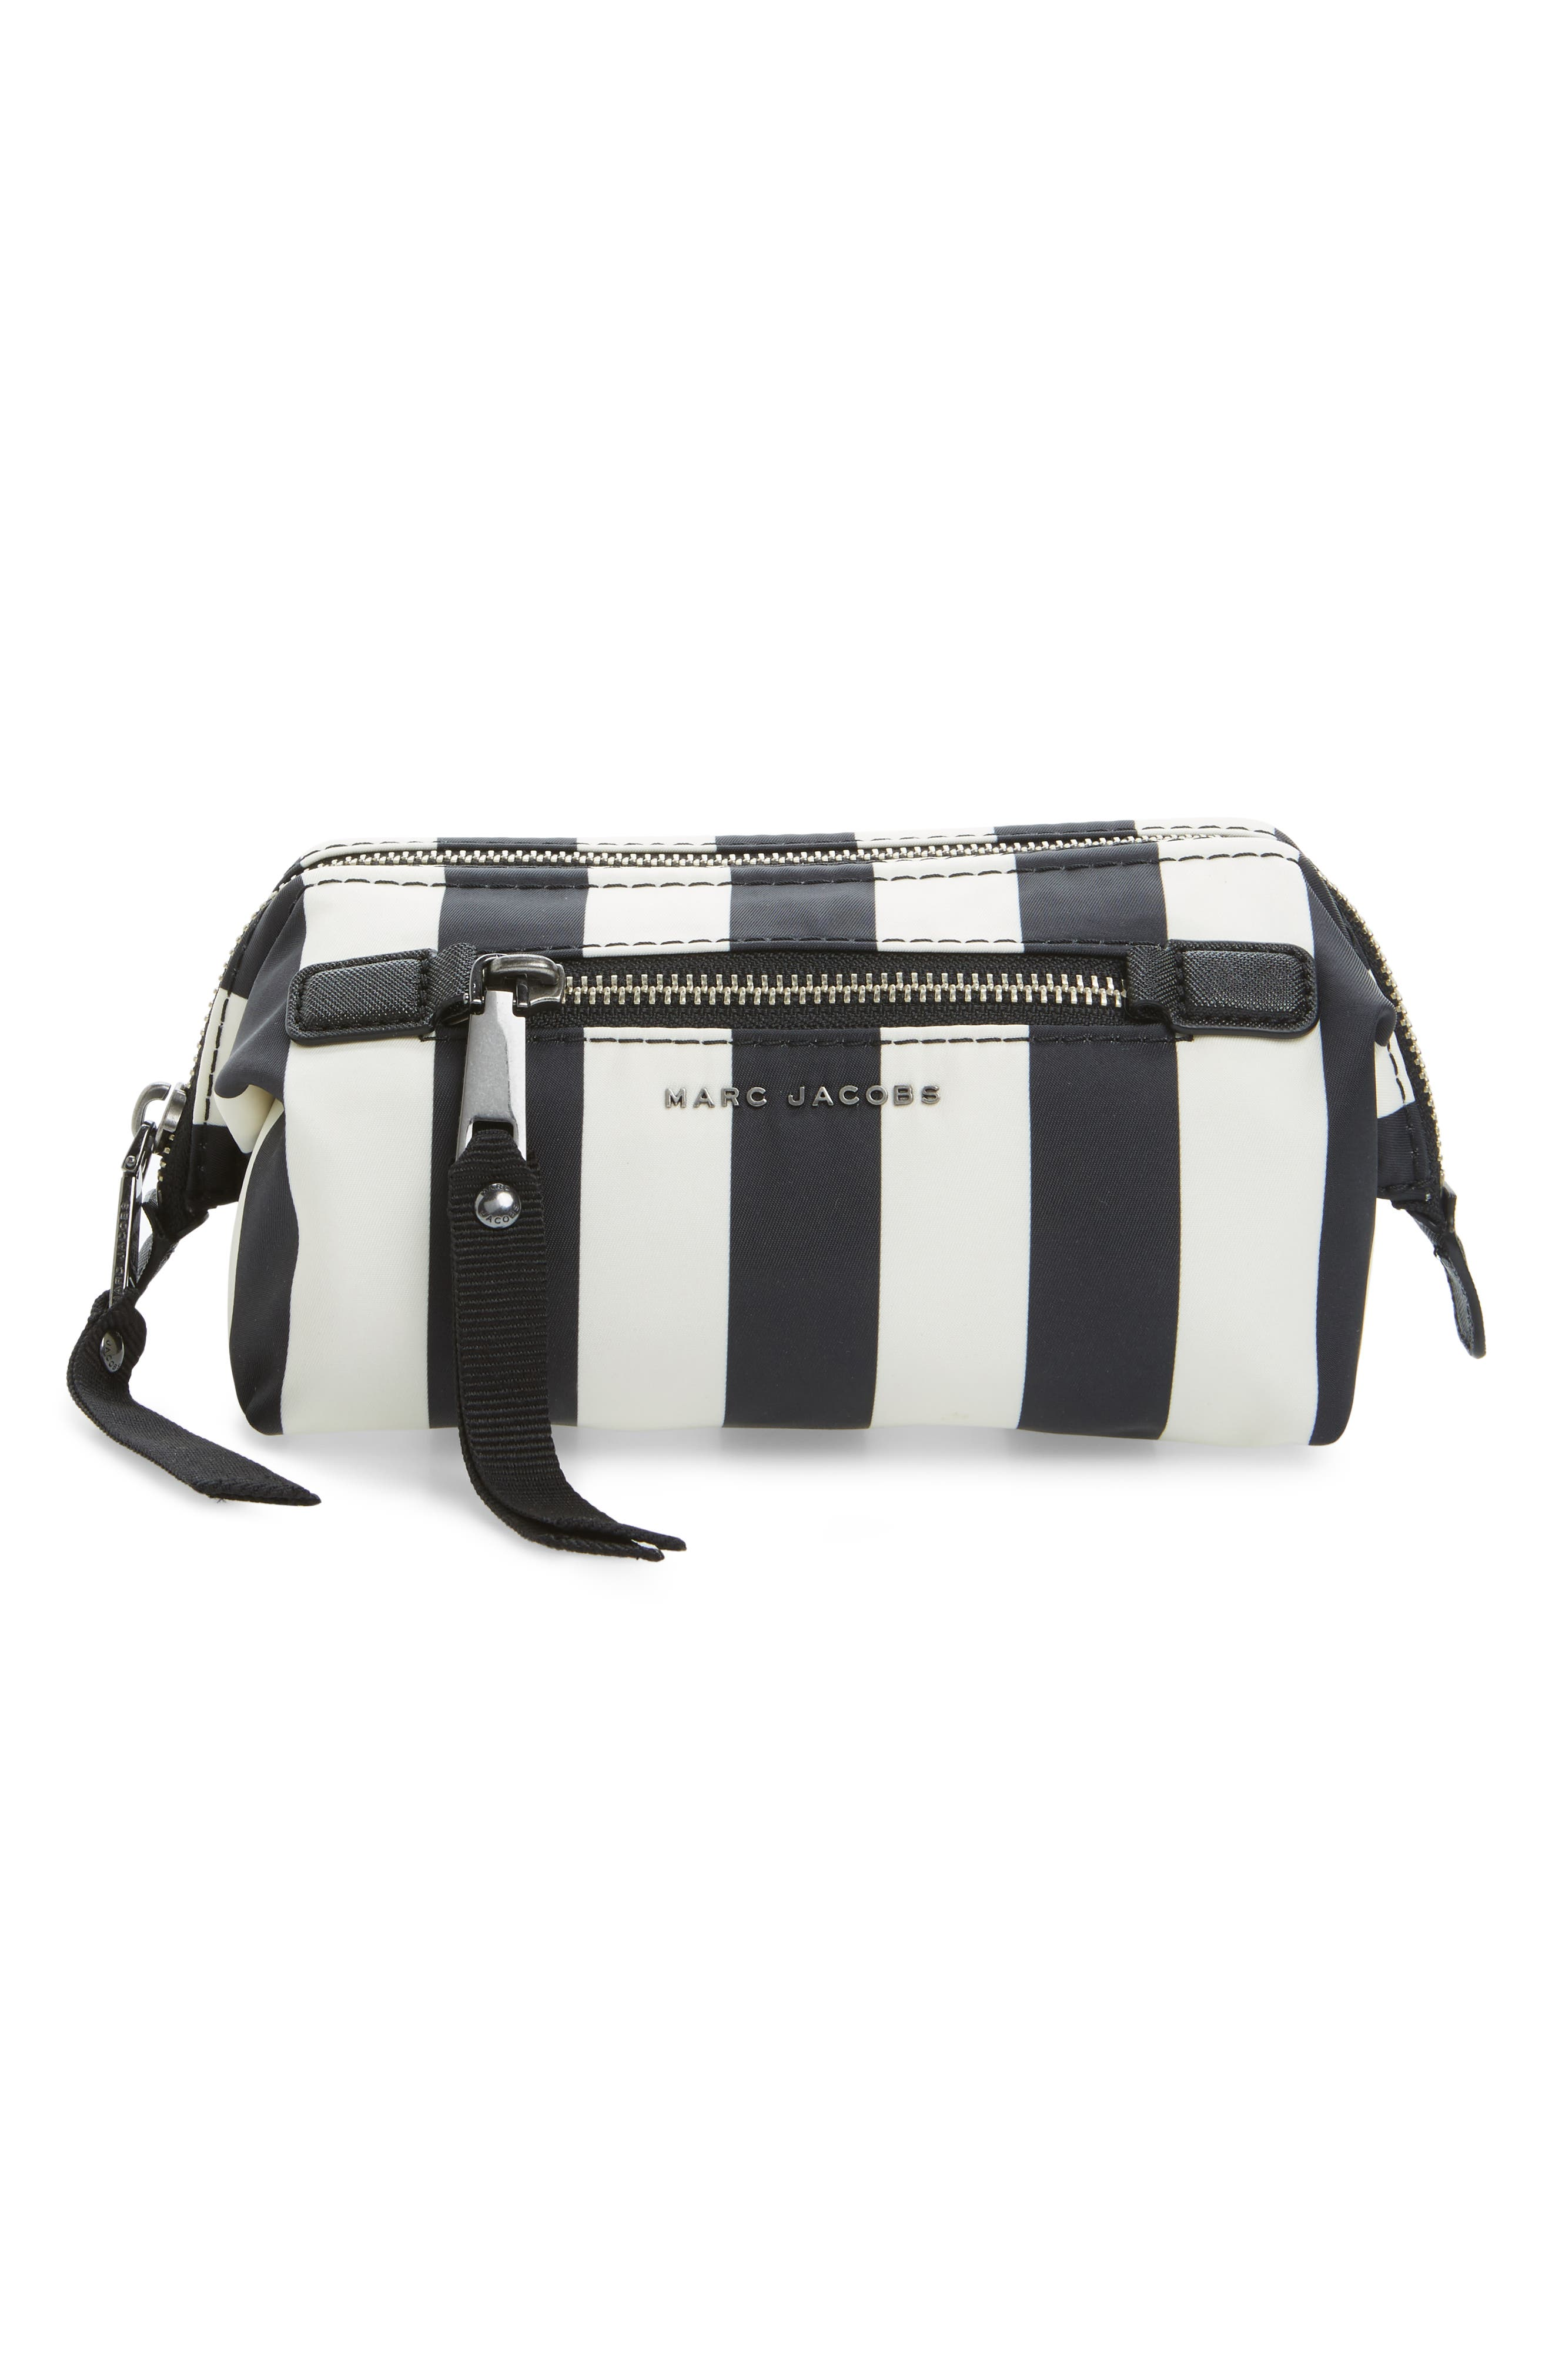 Stripes Trooper Cosmetics Bag,                             Main thumbnail 1, color,                             001